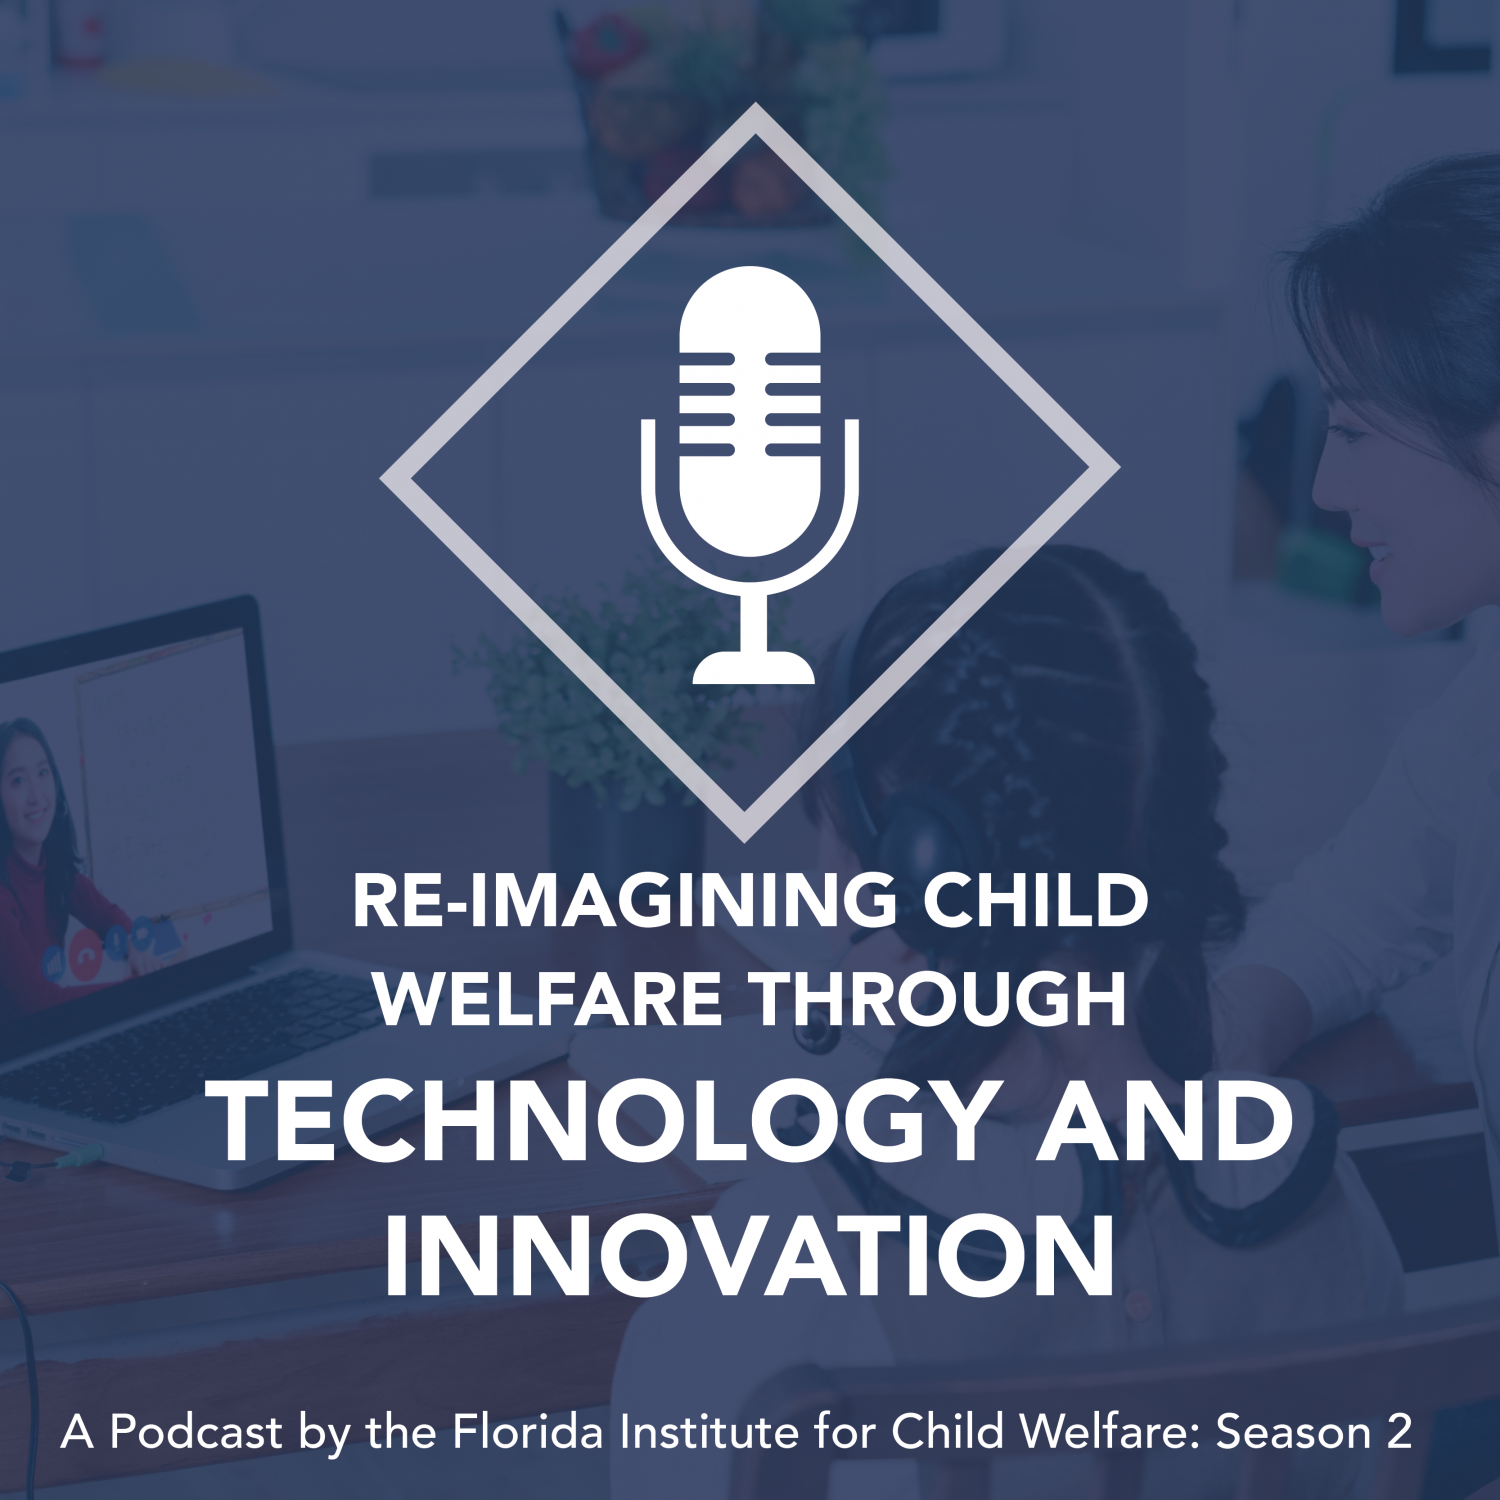 RE-IMAGINING CHILD WELFARE THROUGH TECHNOLOGY AND INNOVATION